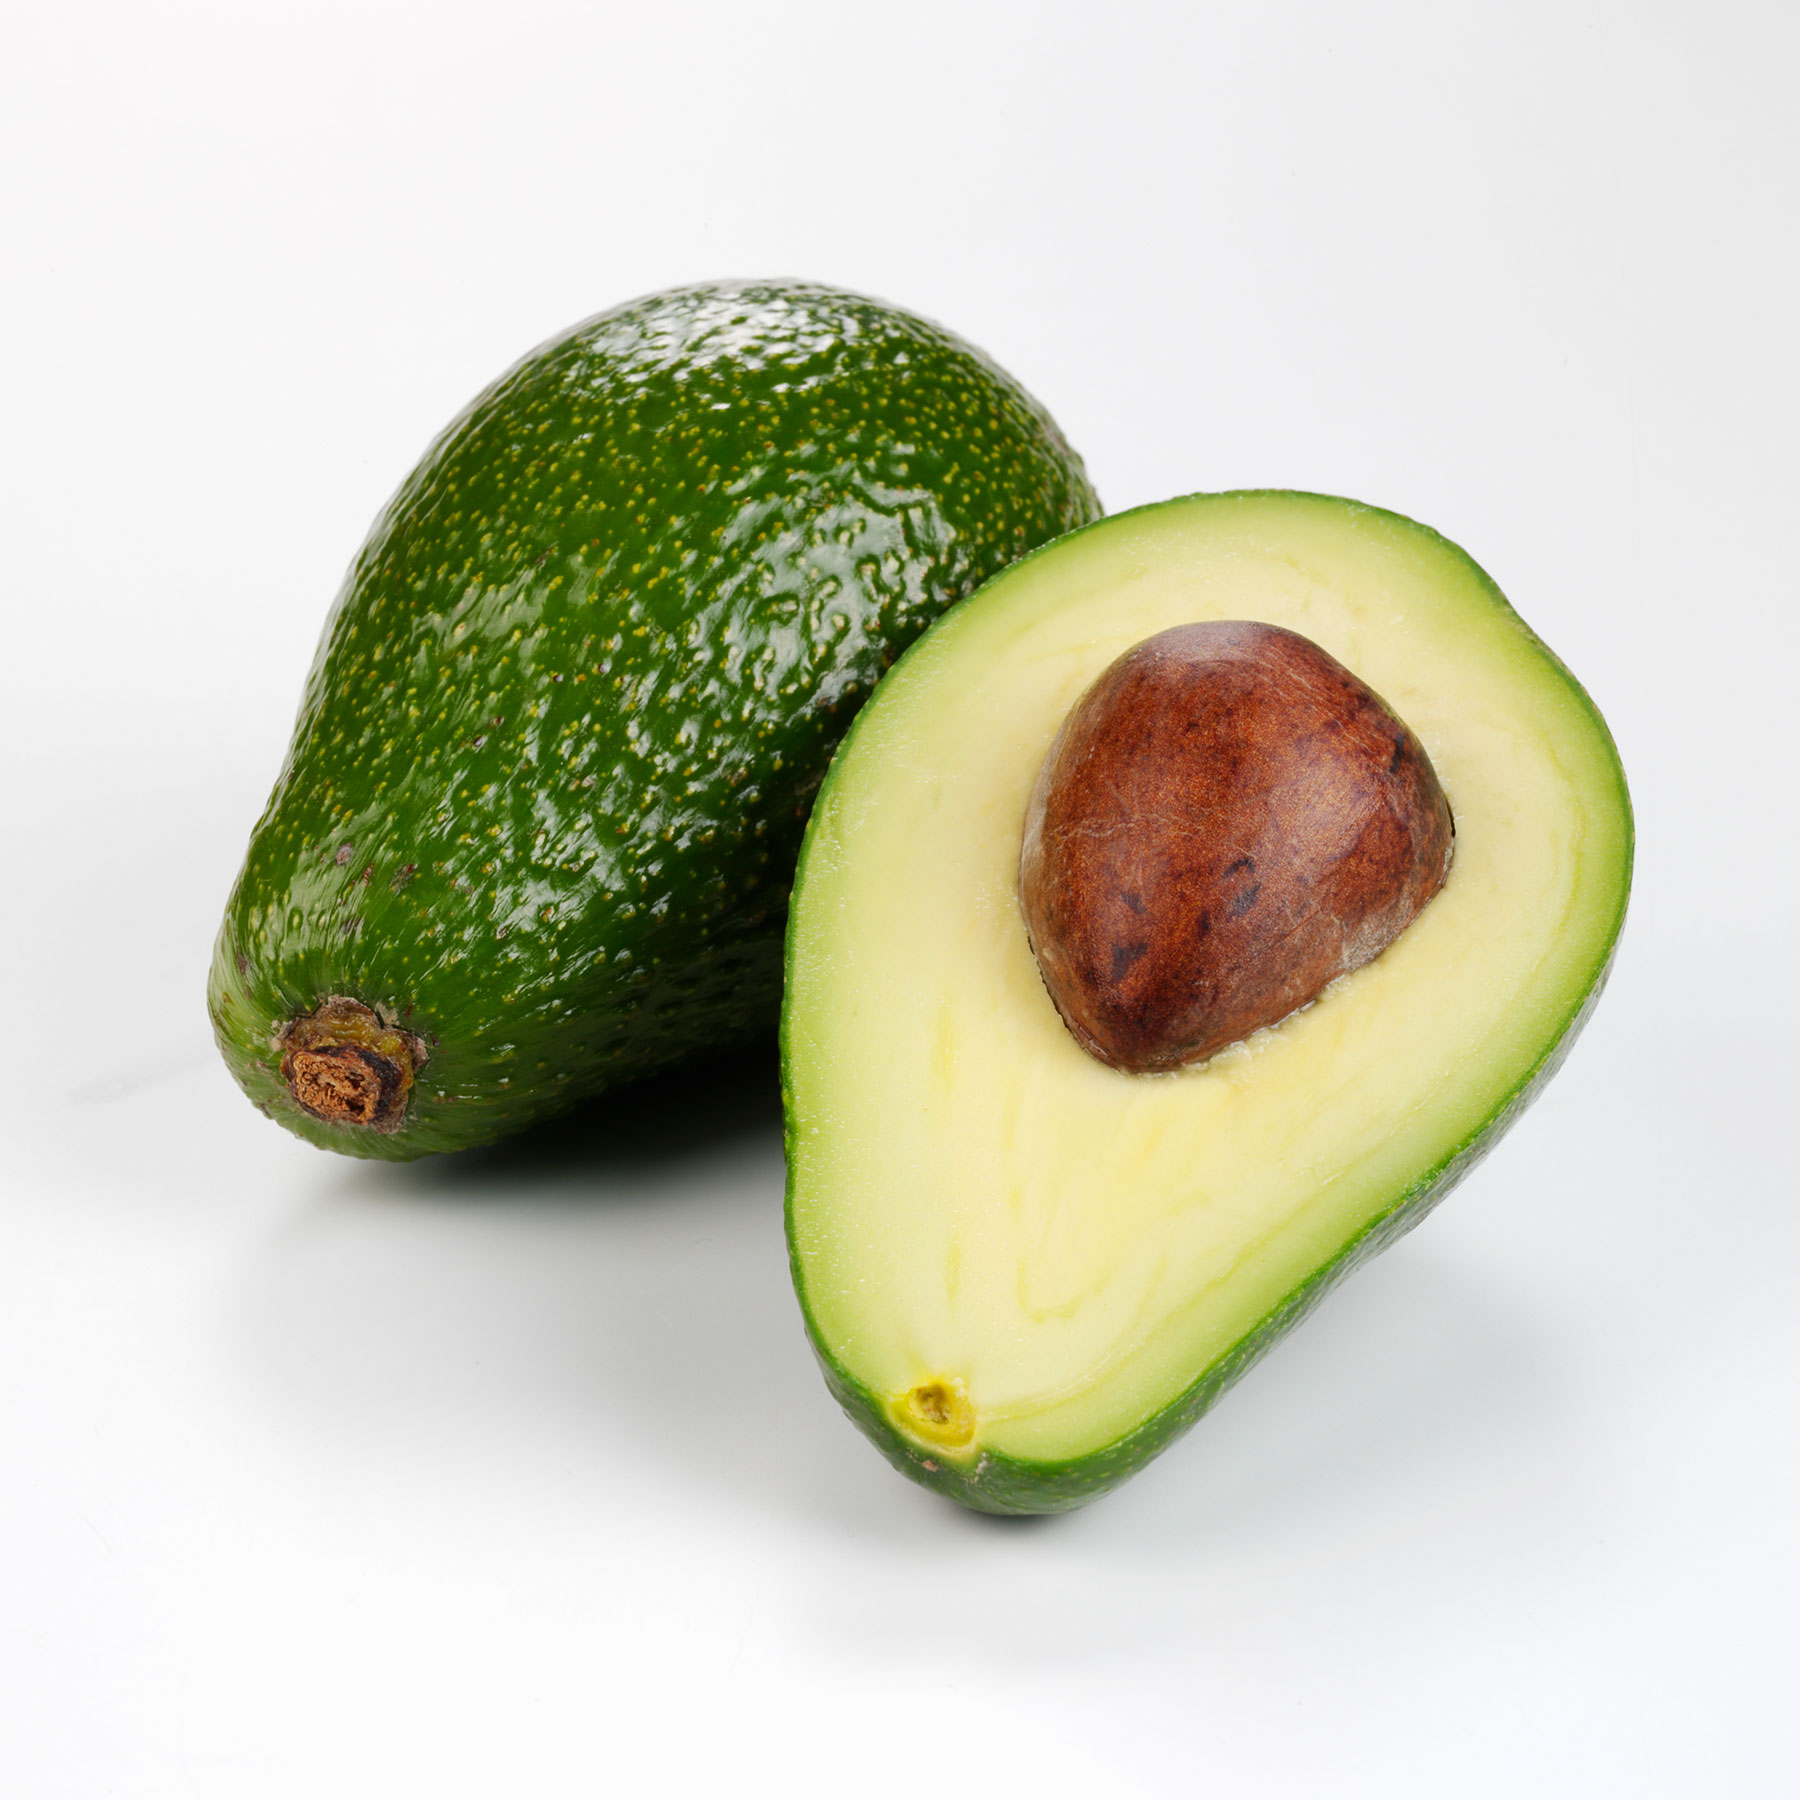 Superfoods to Know About: Avocados